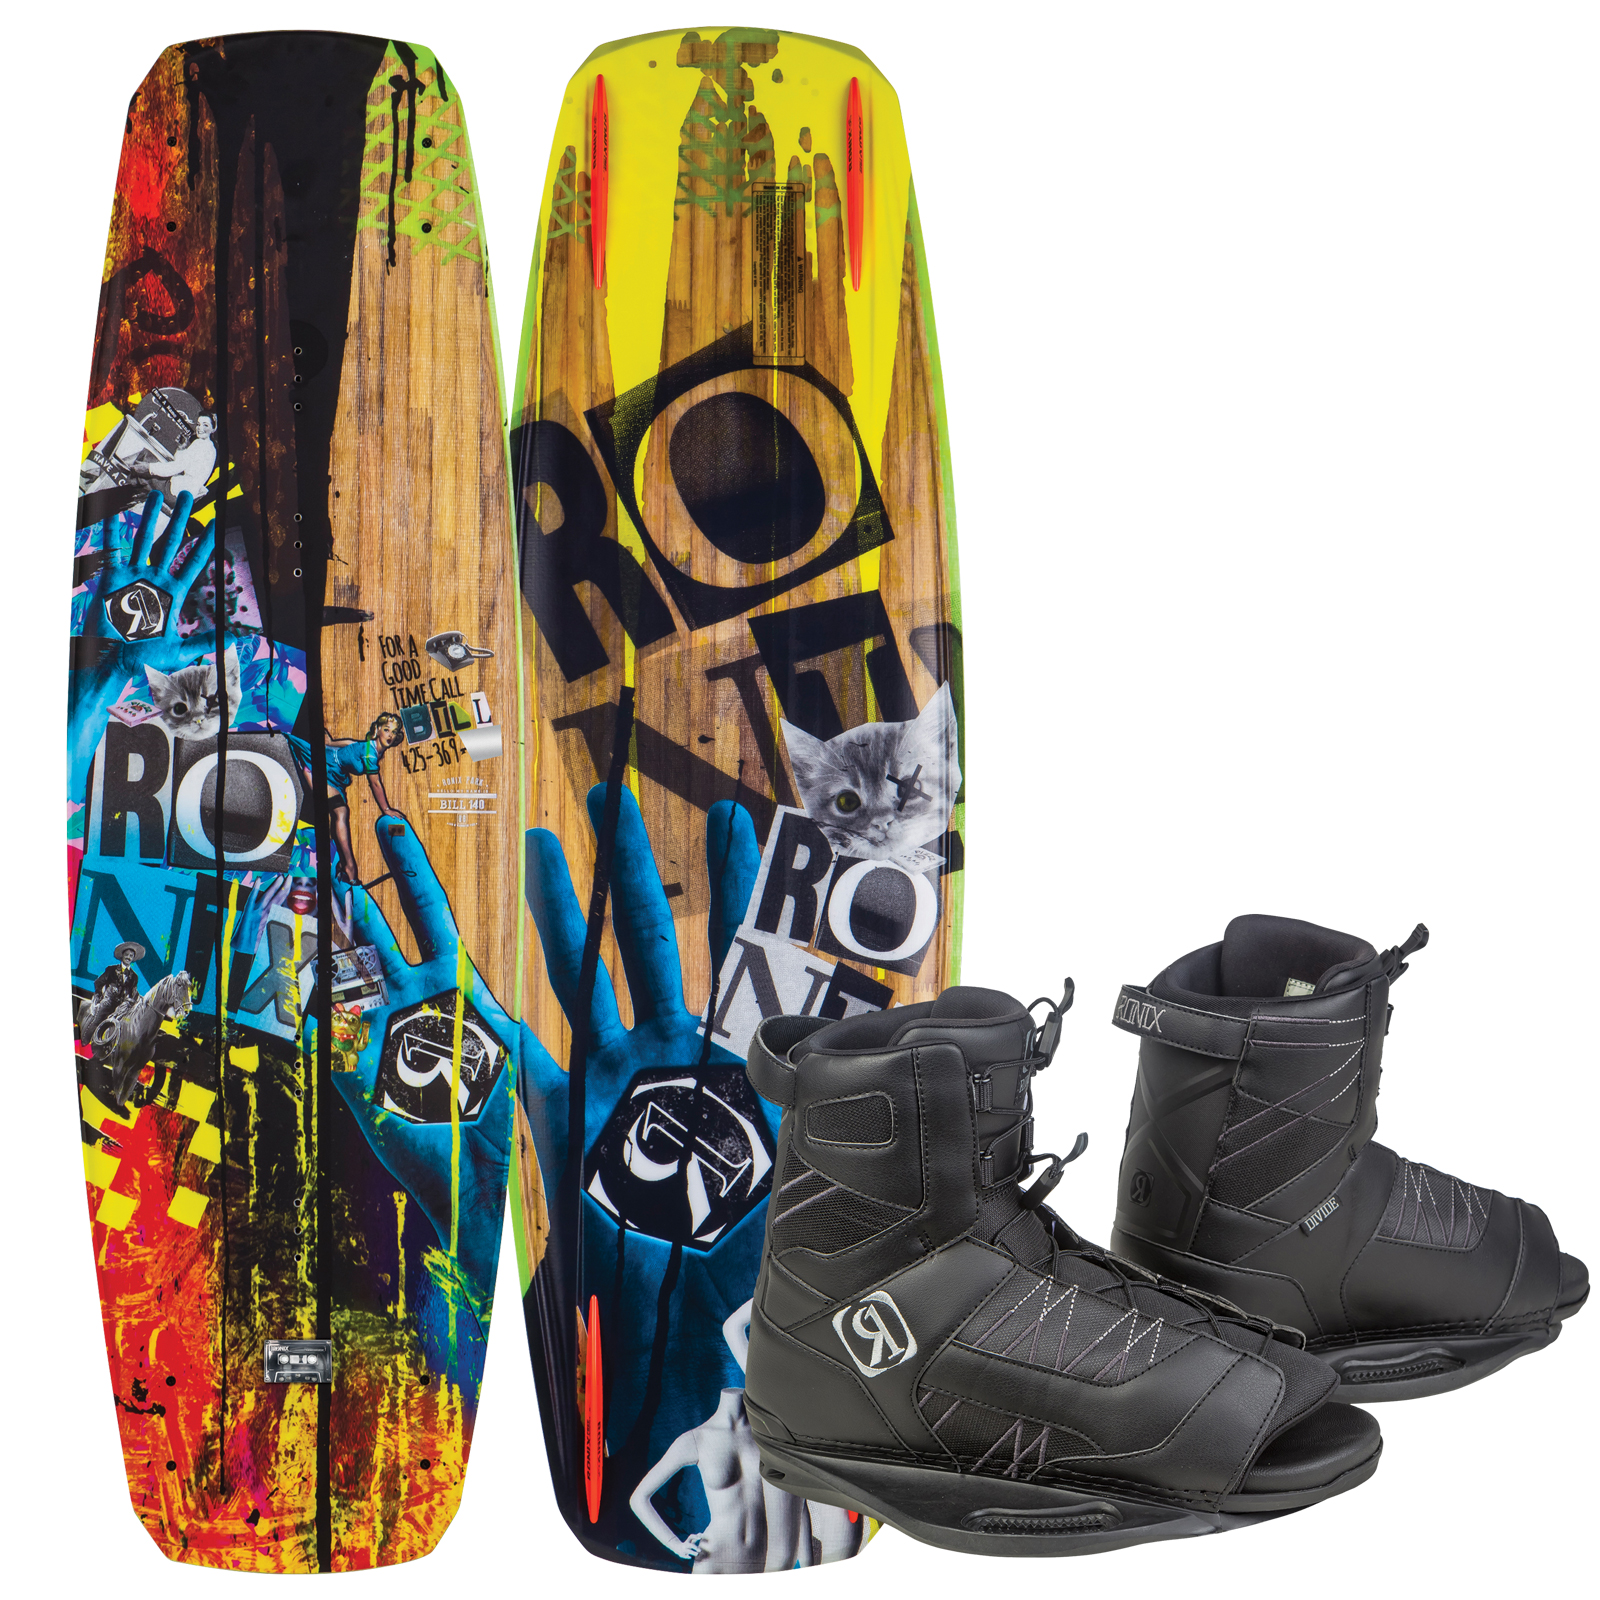 BILL 130 W/ DIVIDE EU 37-41.5/US 5-8.5 PACKAGE RONIX 2017